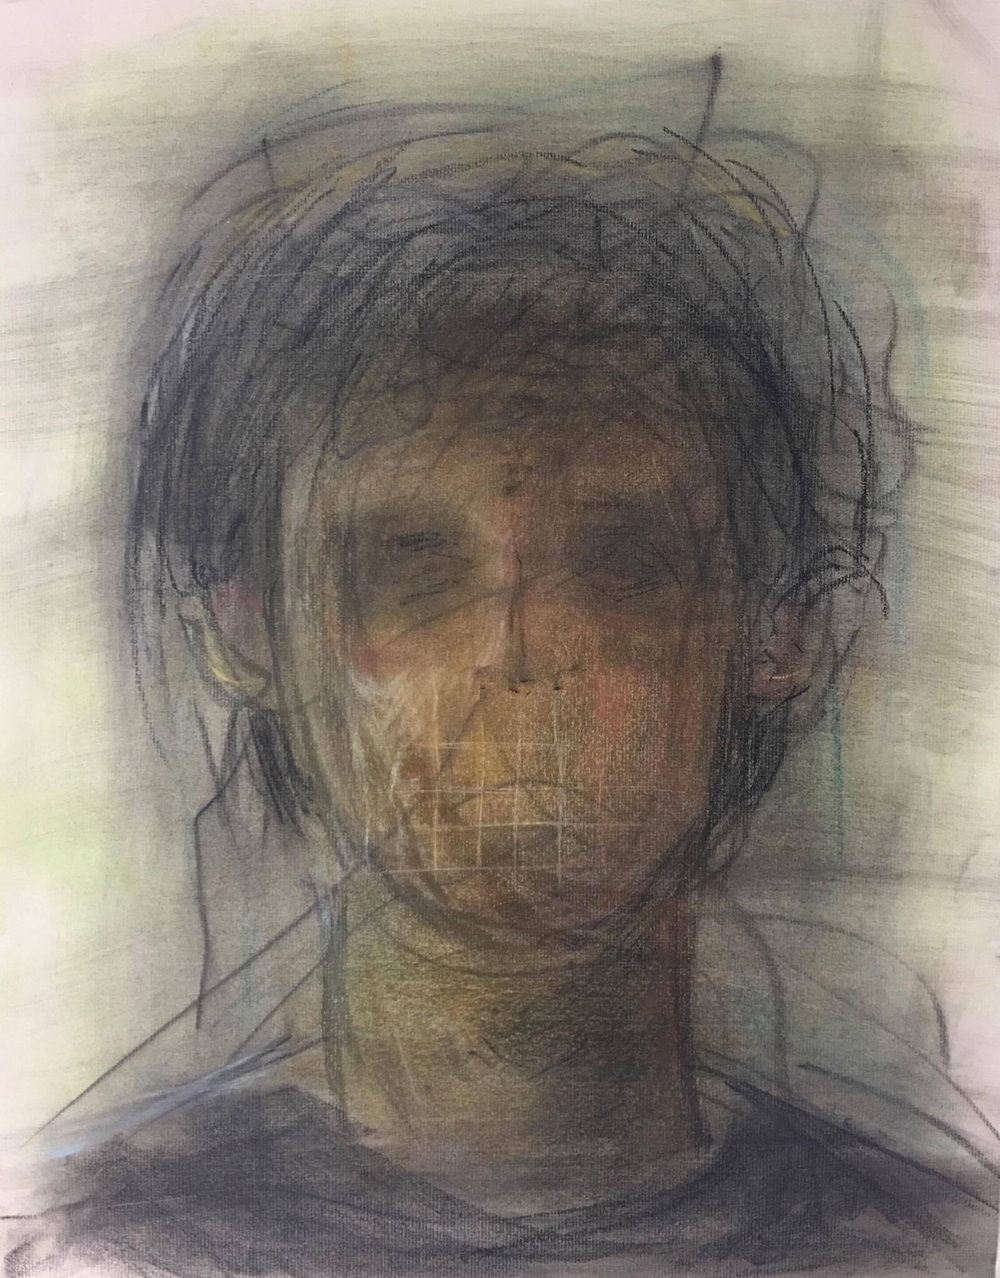 """Self-Portrait."" Self-portrait of the artist, a young man with short brown hair, with distorted face. The beige background is smudged and there are some dark lines, somewhat random in appearance, emanating from the figure. A faint grid pattern is visible over the mouth area."